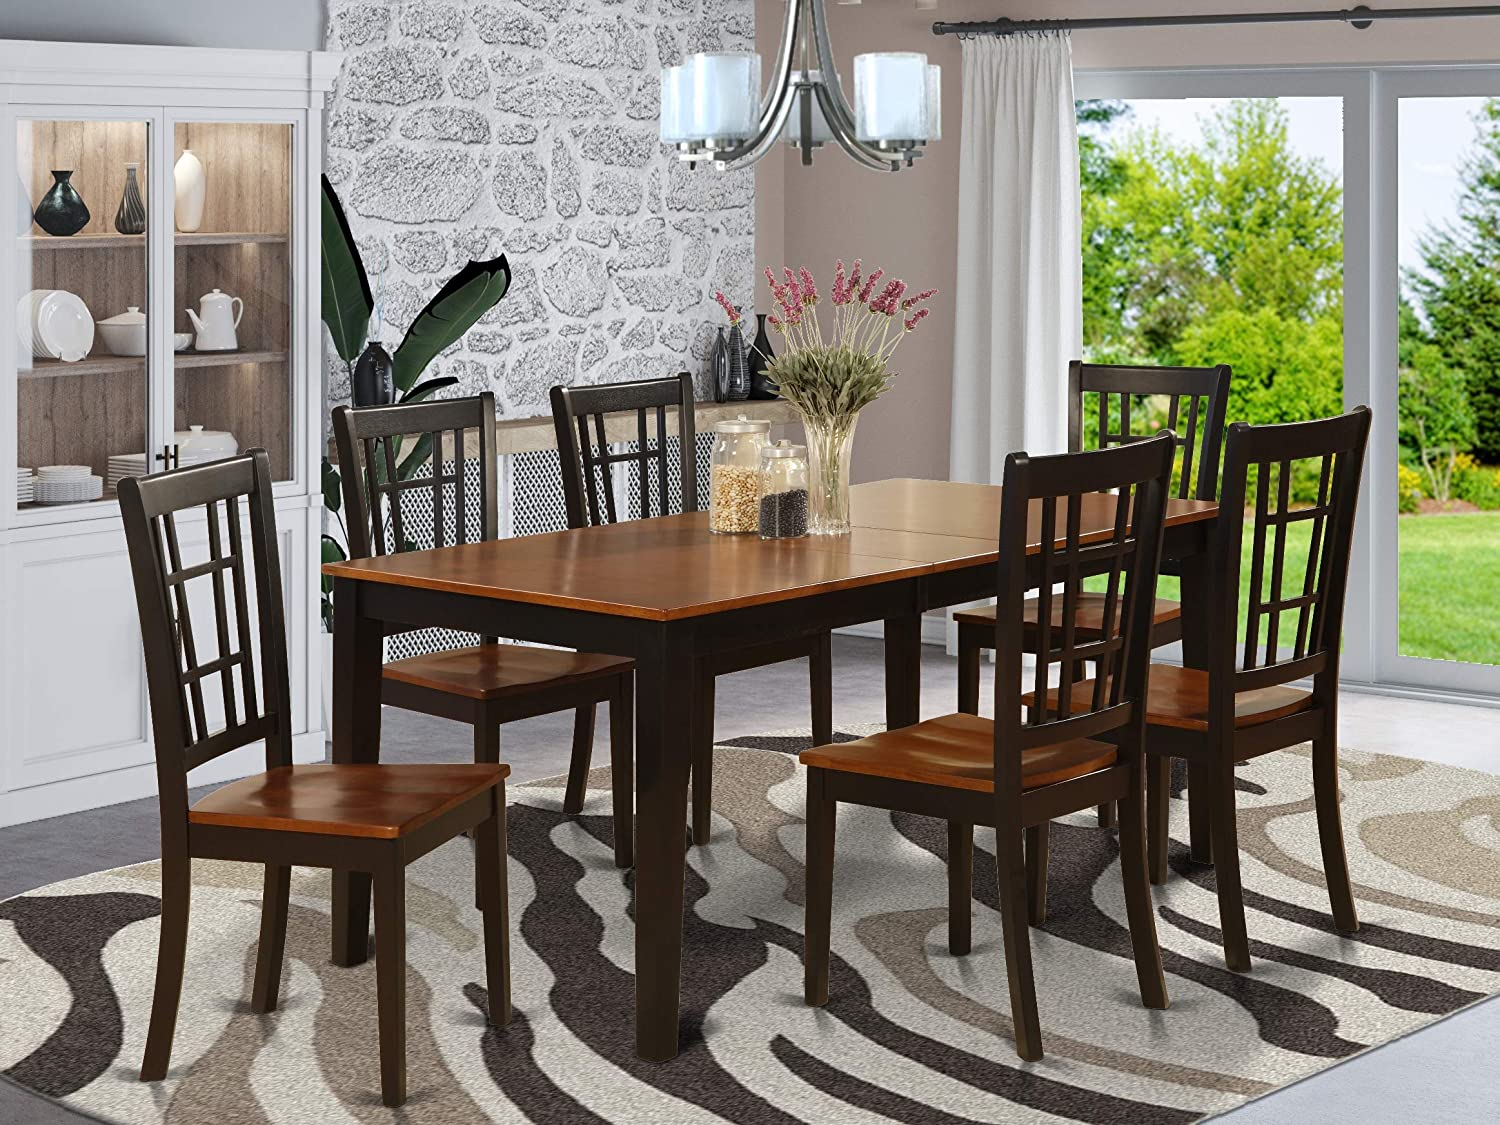 Amazon Com 7 Pc Formal Dining Room Set Dining Table And 6 Chairs For Dining Room Furniture Decor